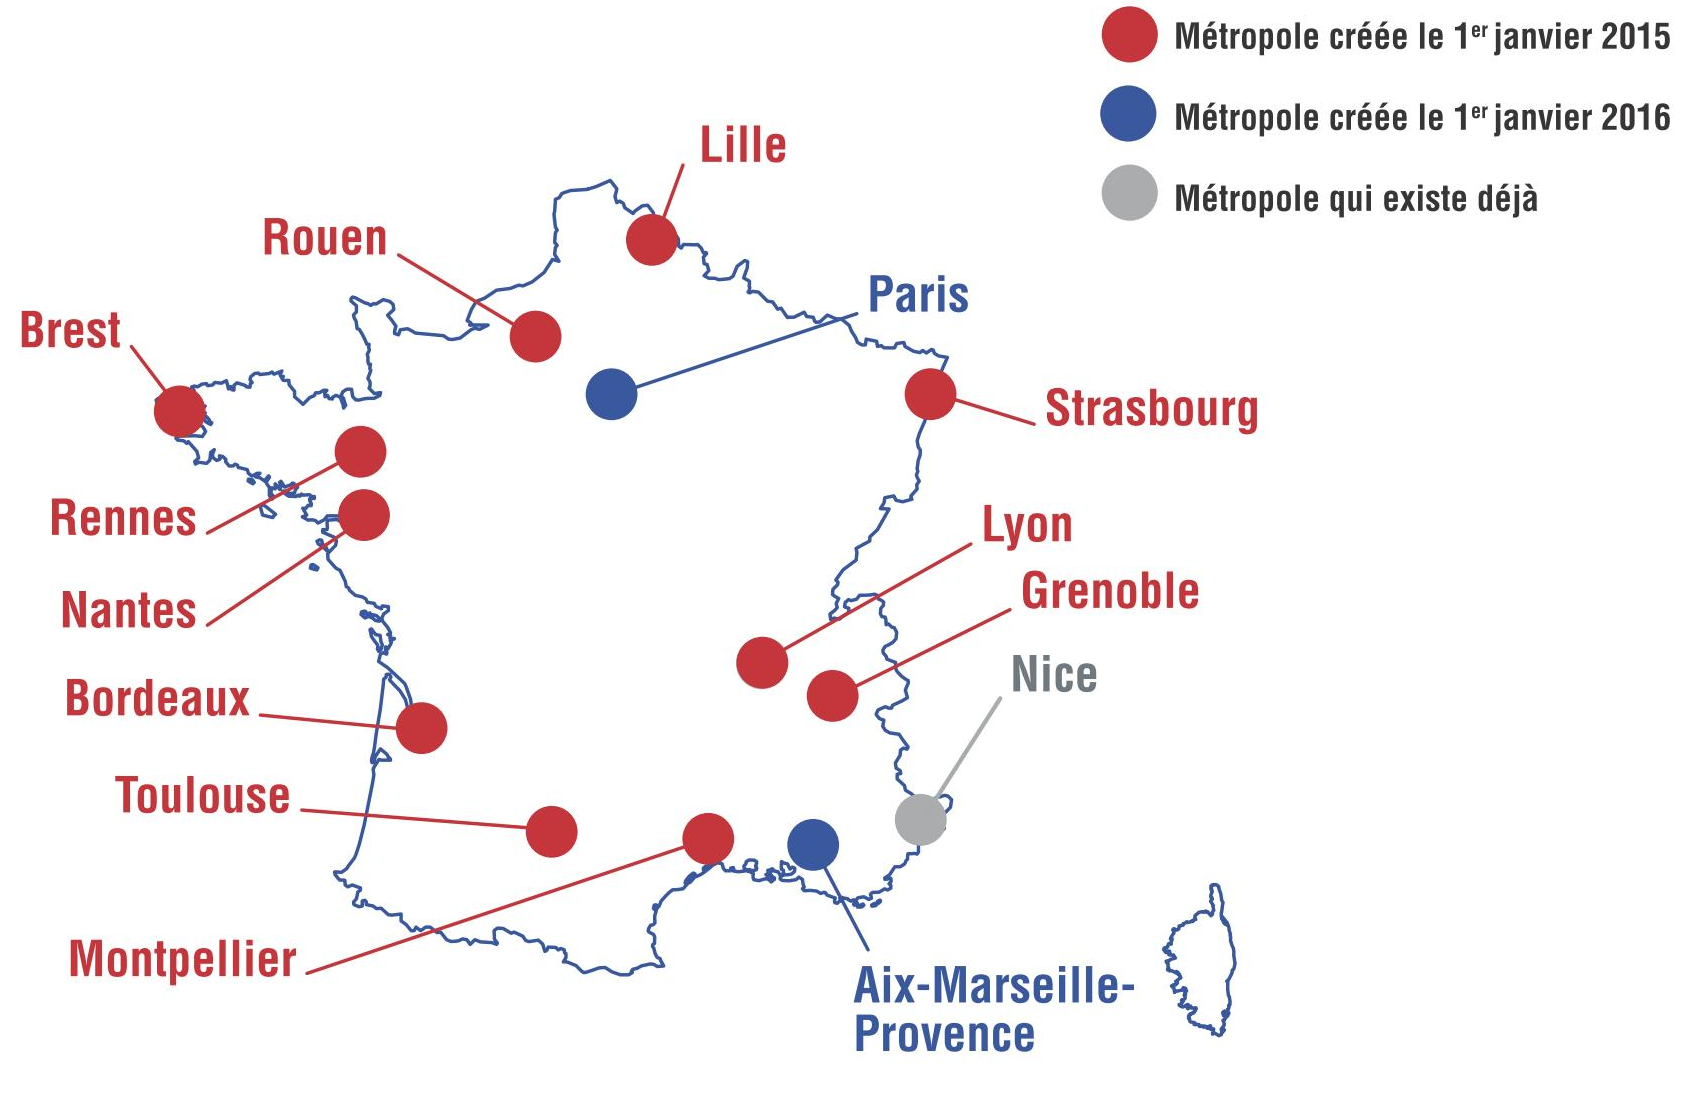 13 Metropolises (in Red and Blue) Created by the Law of January 27th, 2014 (Gouvernement.fr, 2014)